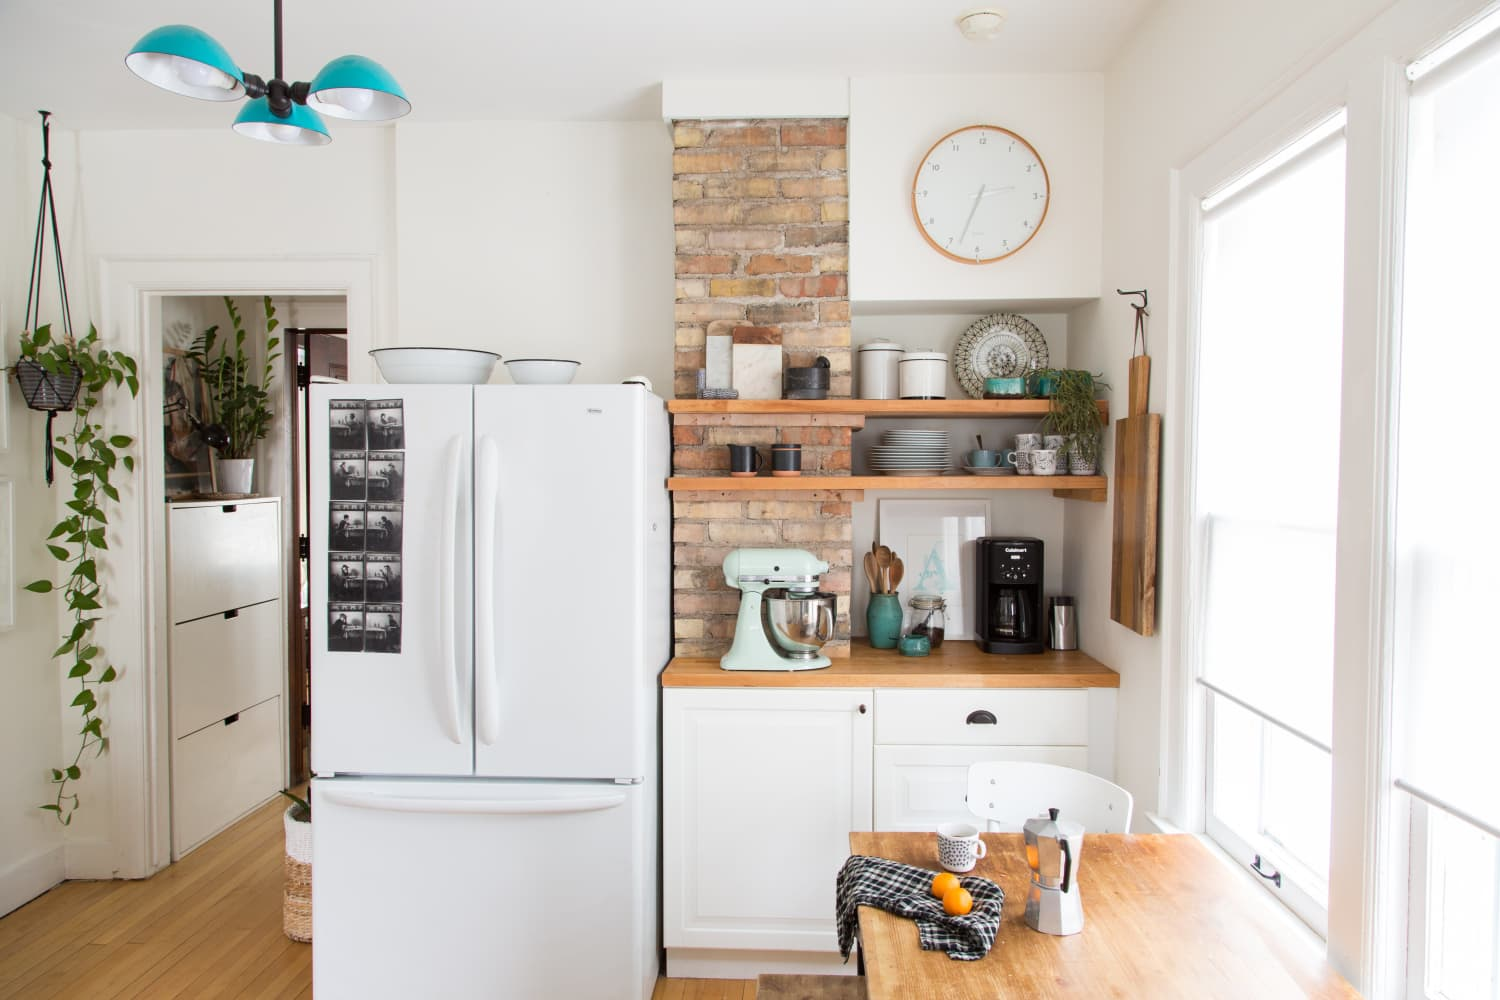 10 Cleaning Tips from Midwestern Grandmas